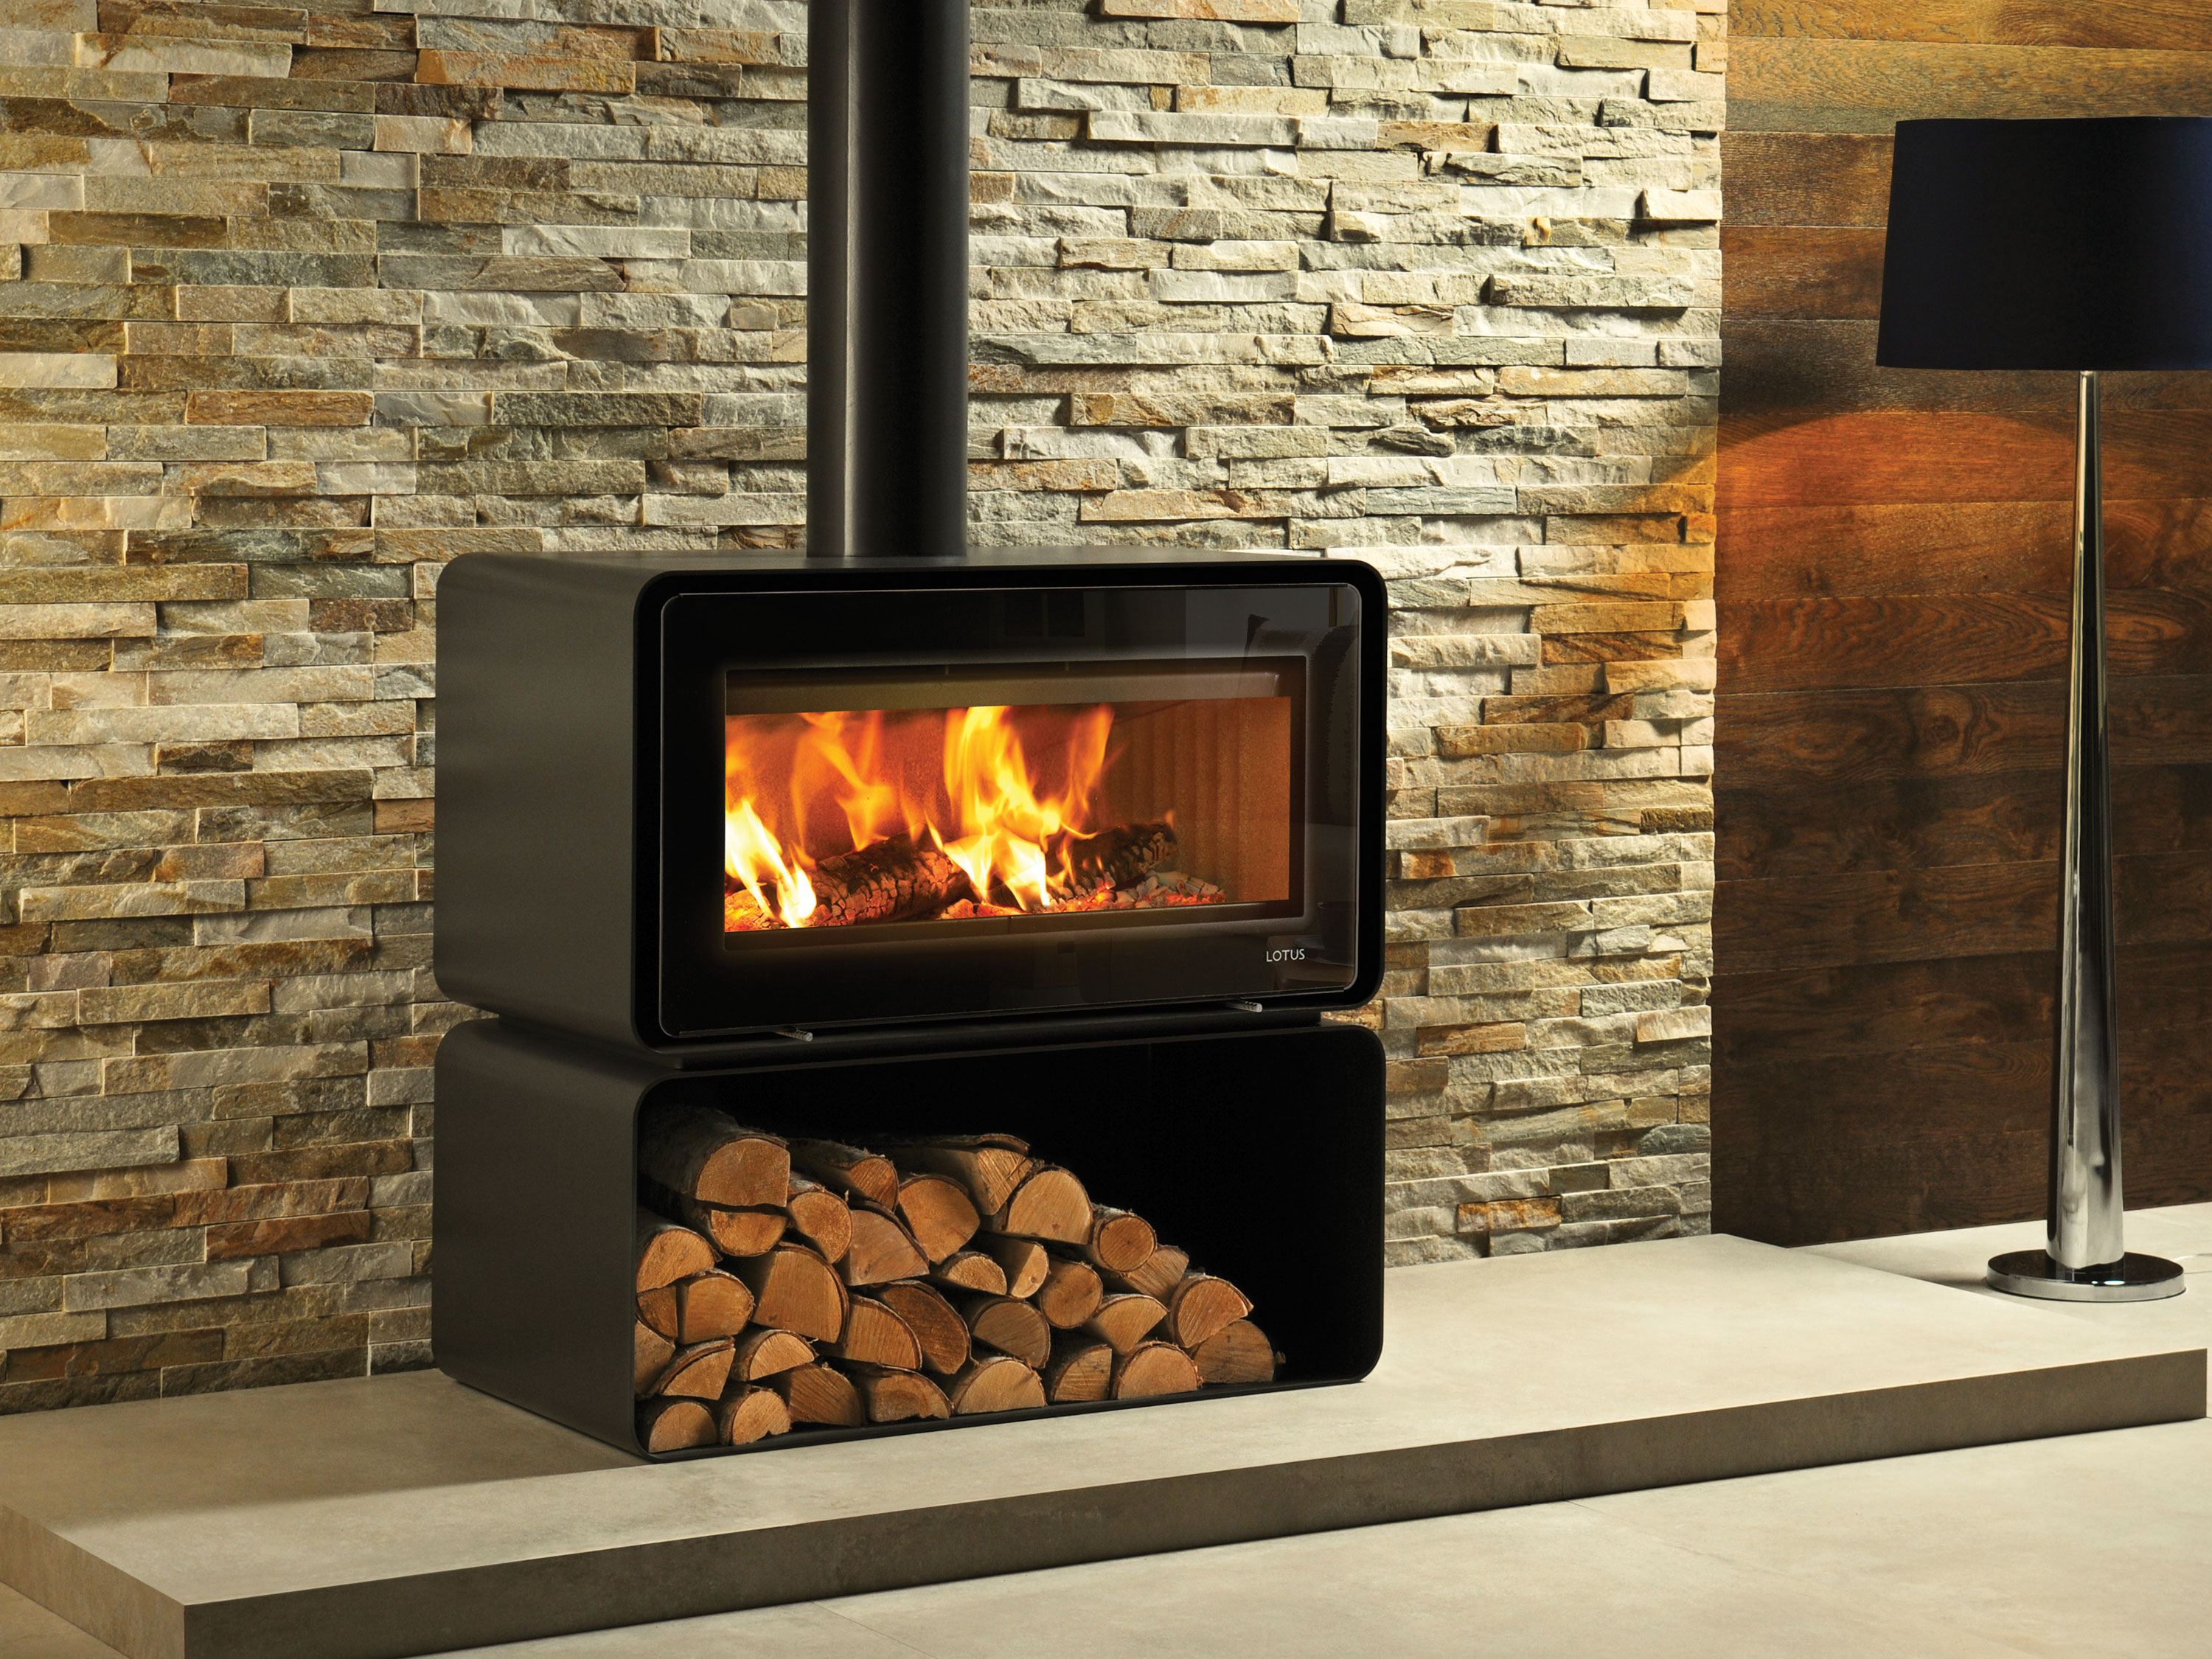 Heat Proof Tiles For Fireplace Electric